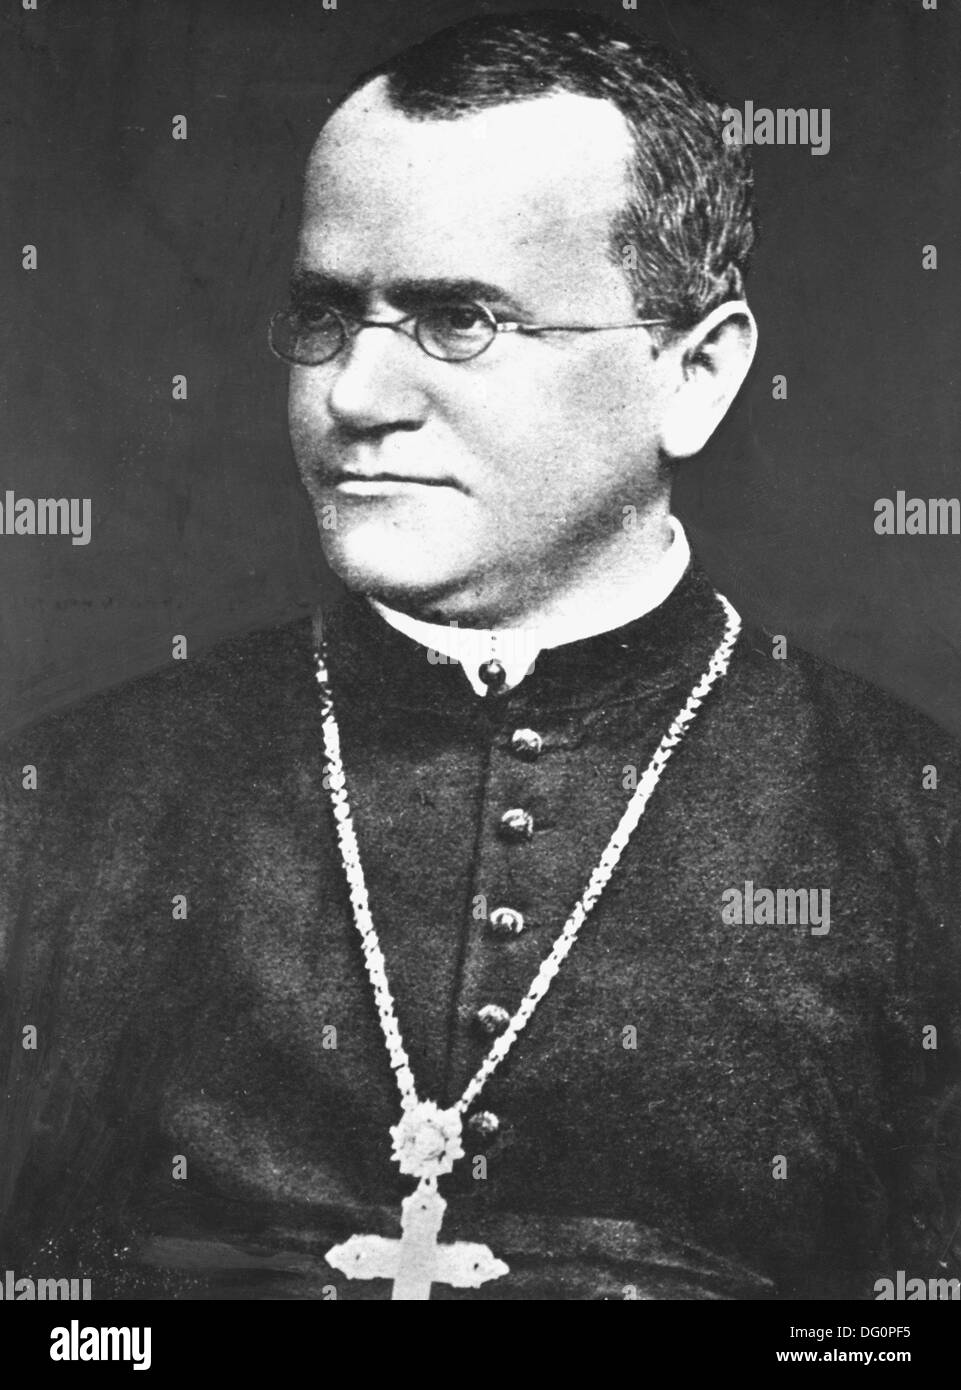 the life of gregor mendel On biographycom, learn more about gregor mendel, the 19th century  synopsis early life experiments and theories later life and legacy.